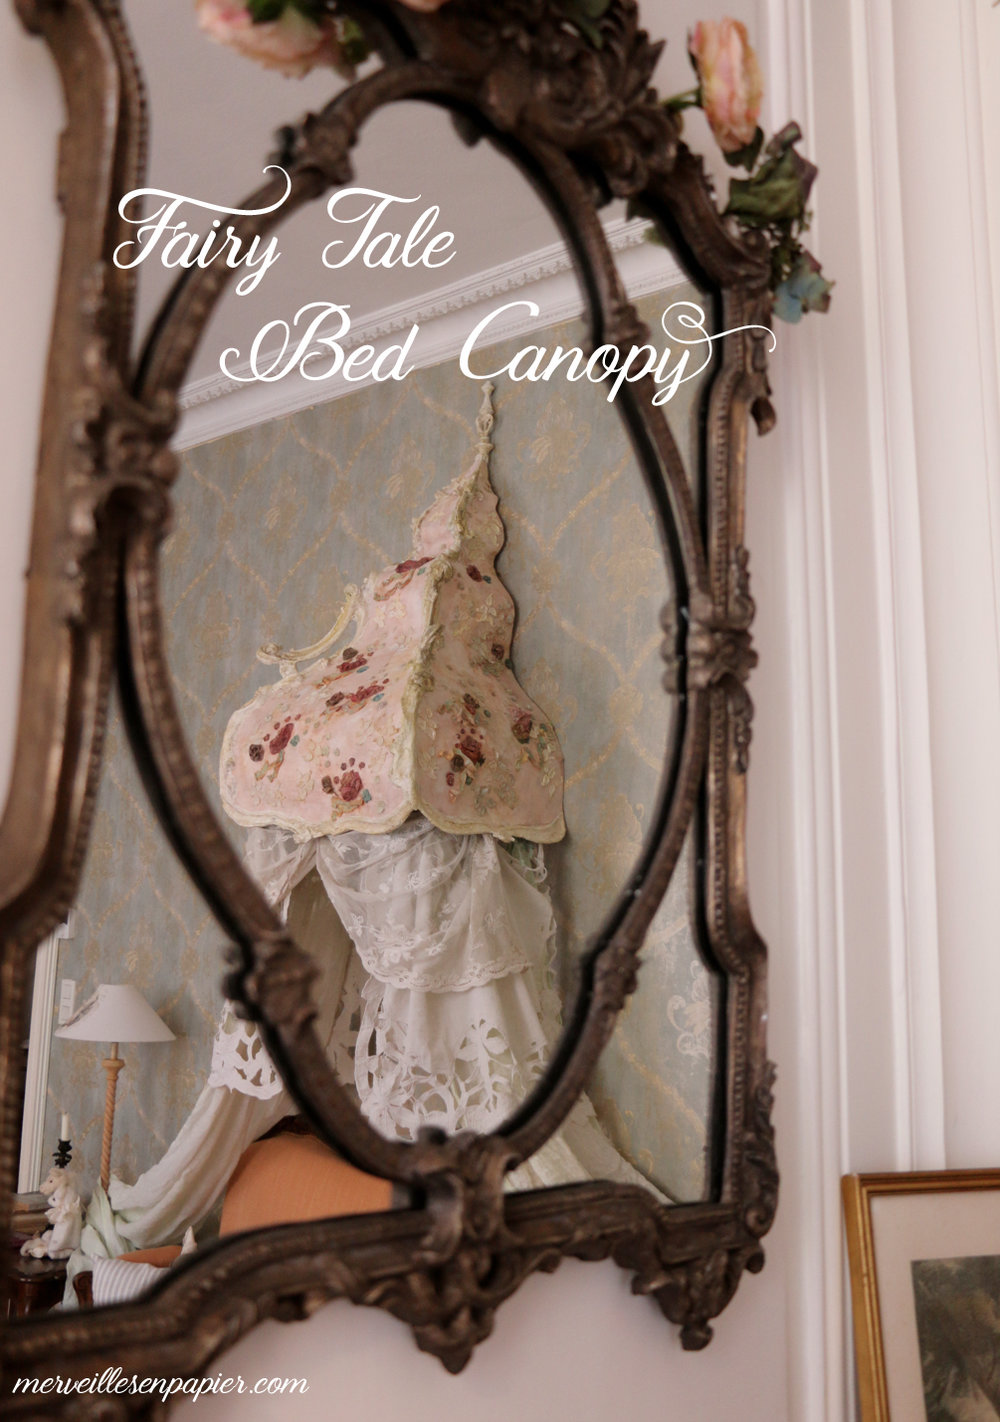 Fairy tale bed Canopy- Fairy Tale Decor Workshop